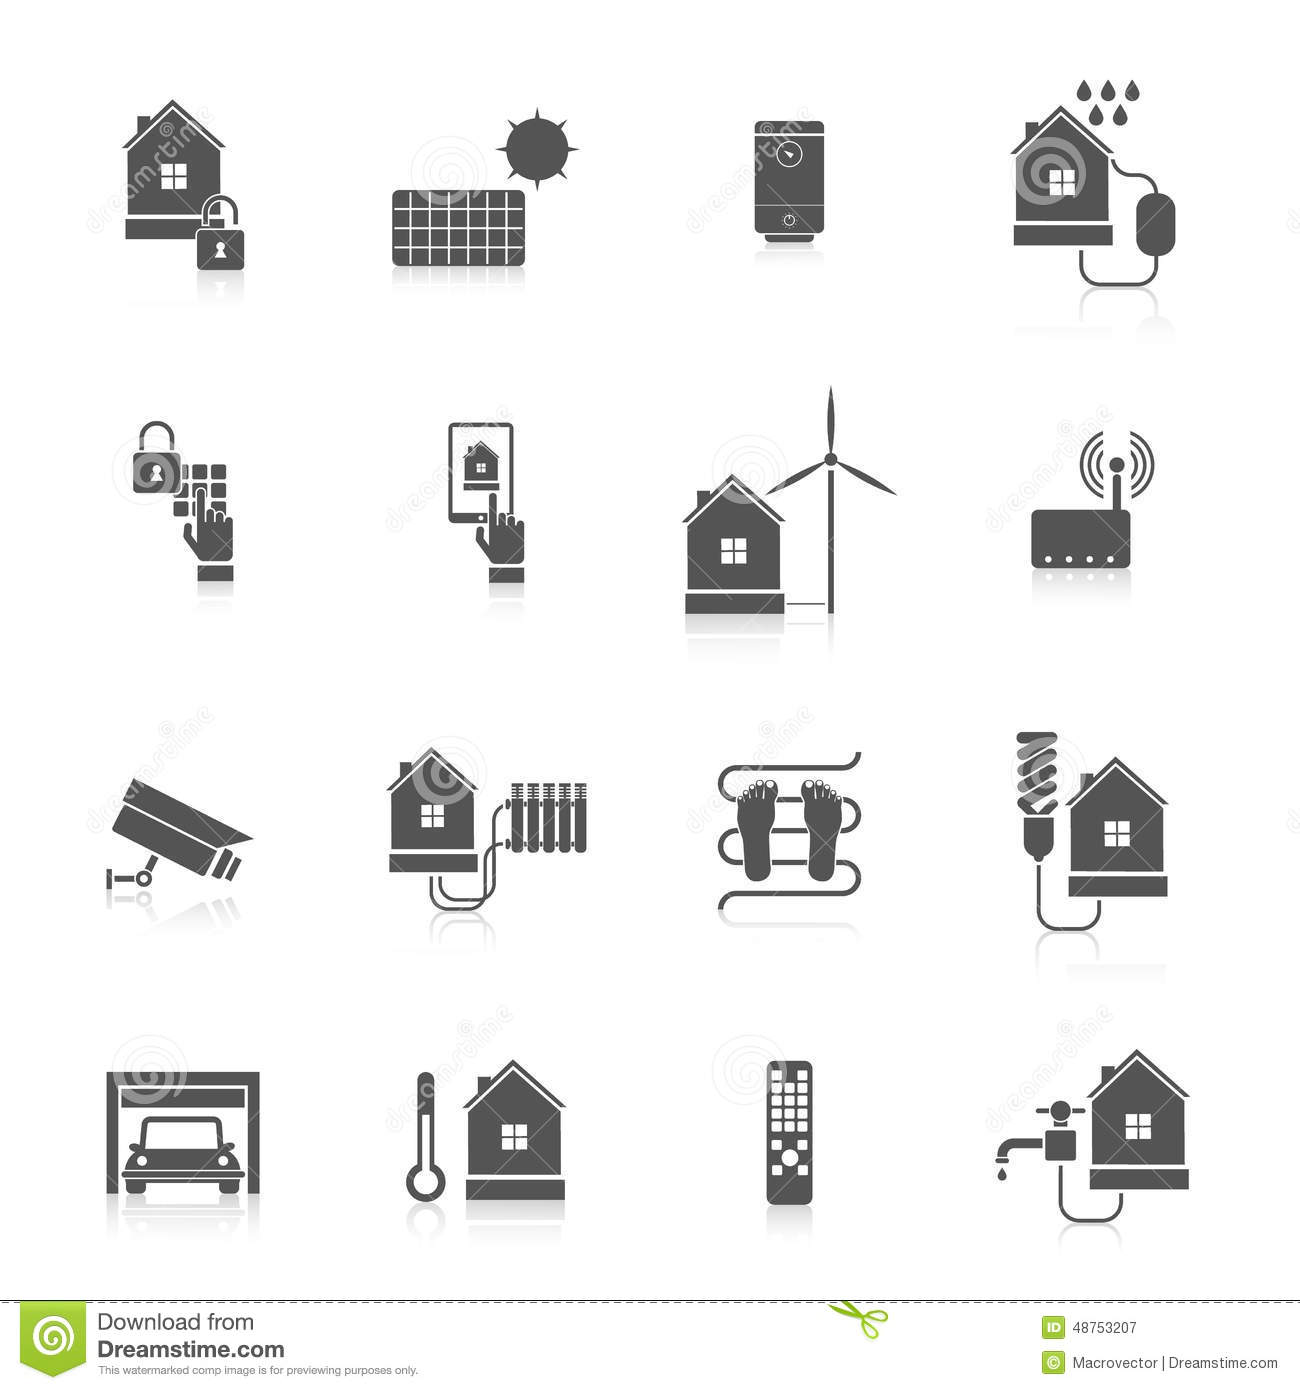 wiring diagram for house alarm system 1989 ford f250 security design eight ineedmorespace co smart home icon set stock vector image of kitchen burglar